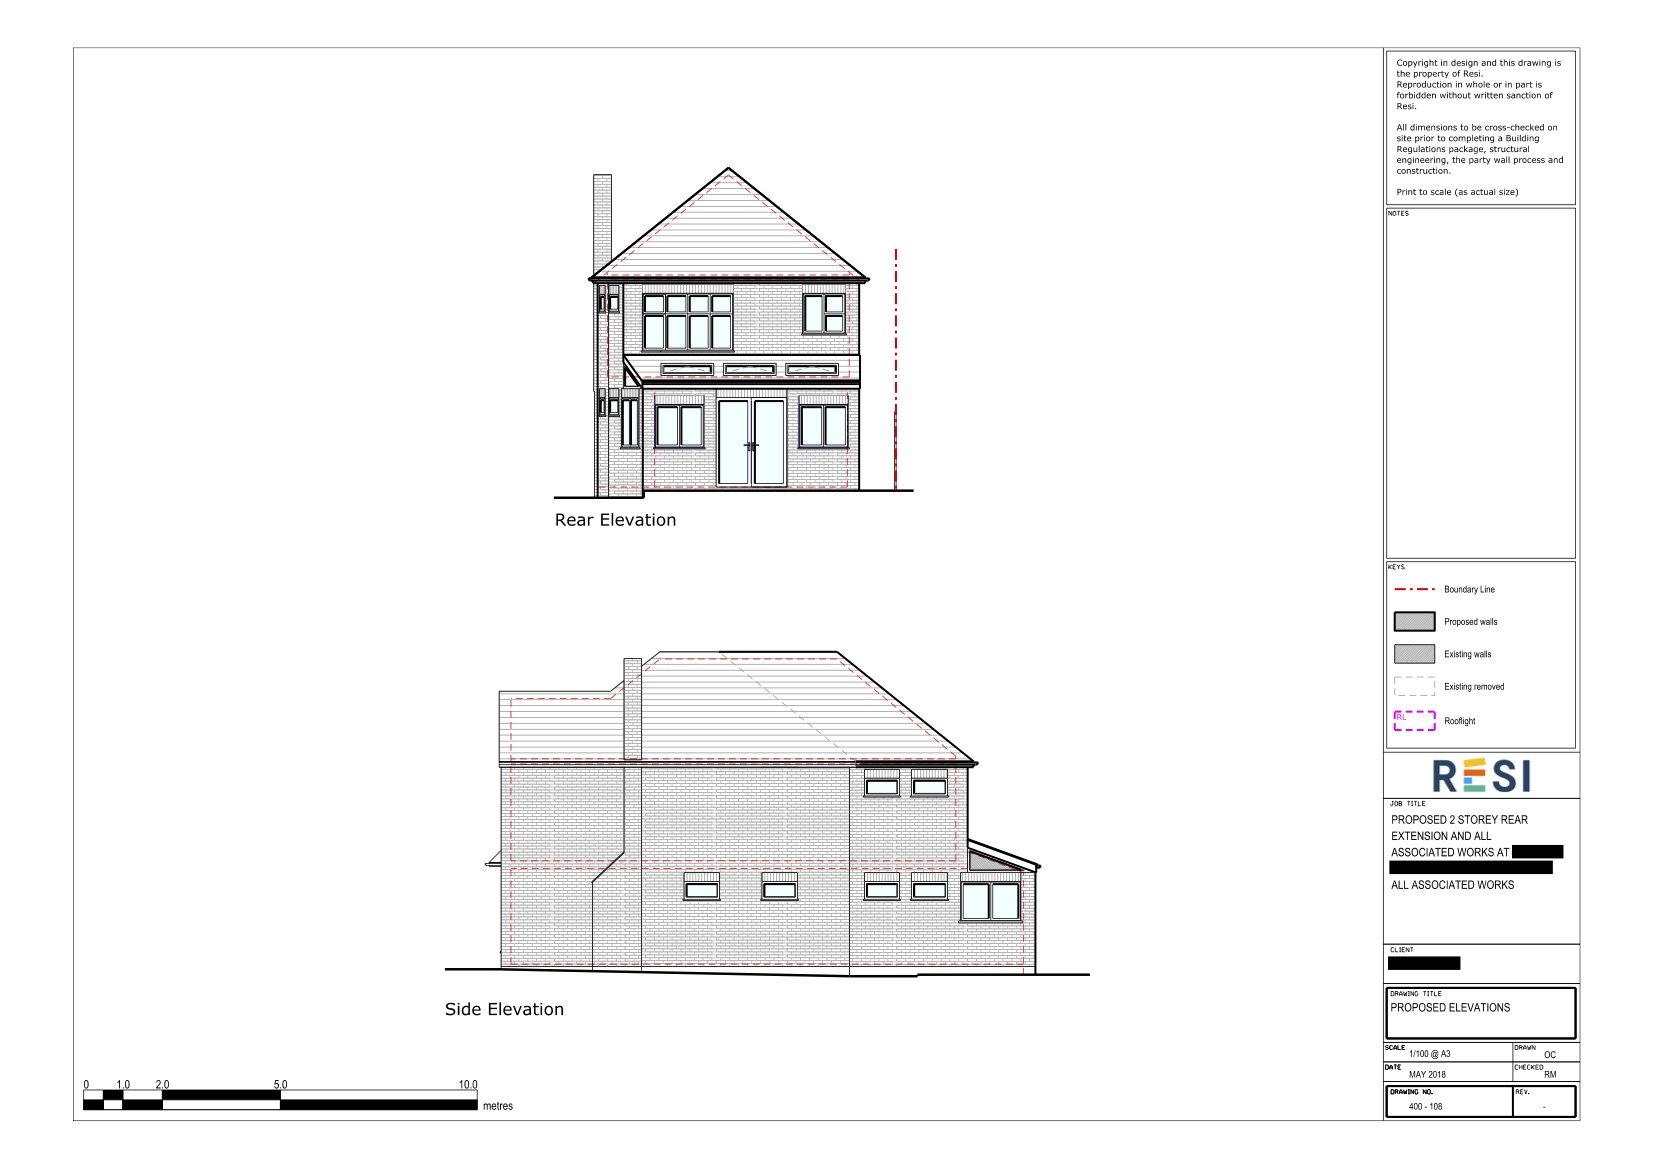 Architectural drawings   gf rear and side elevations